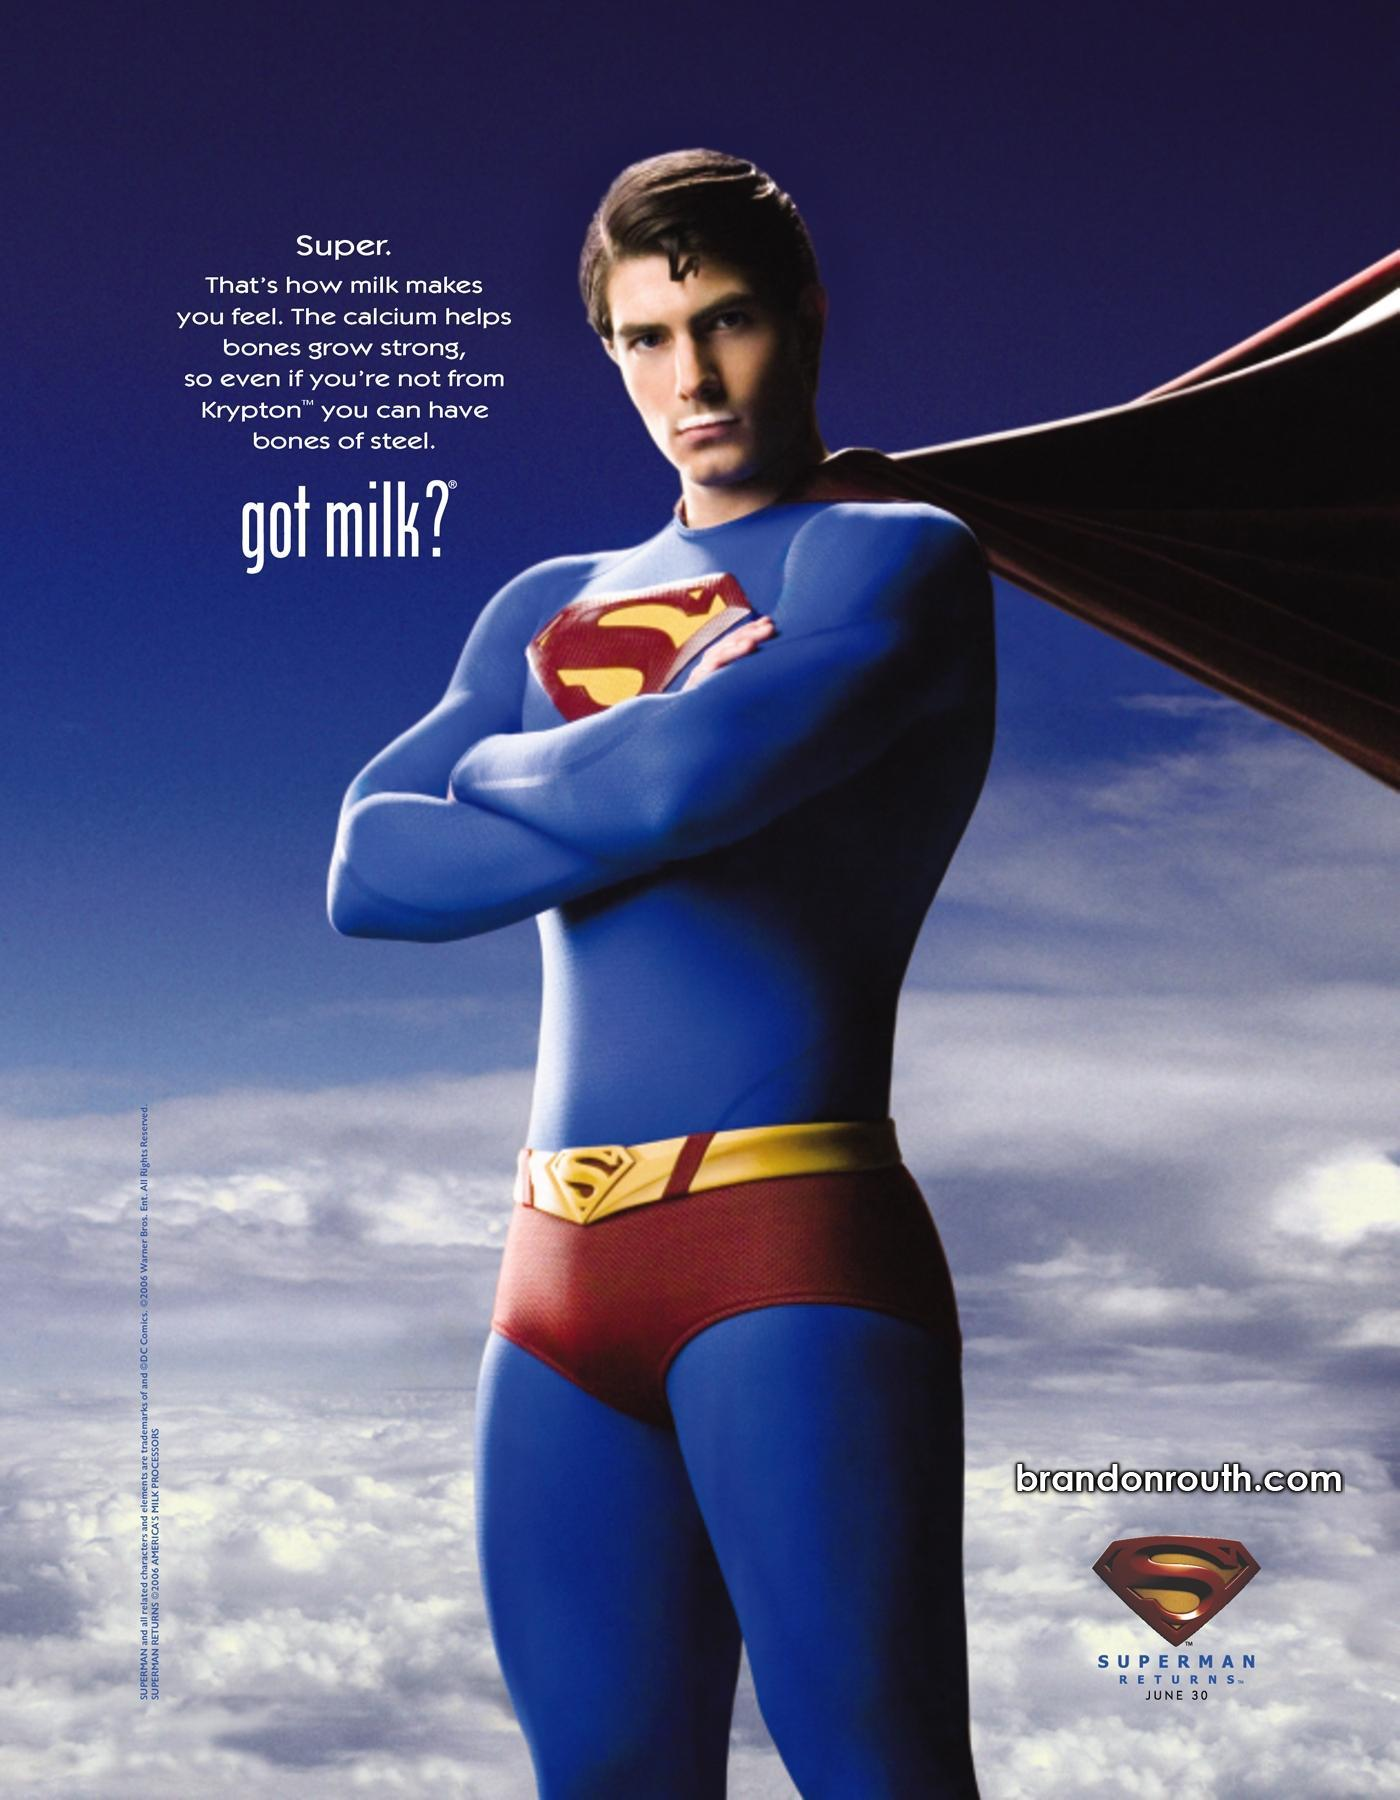 superman-got-milk